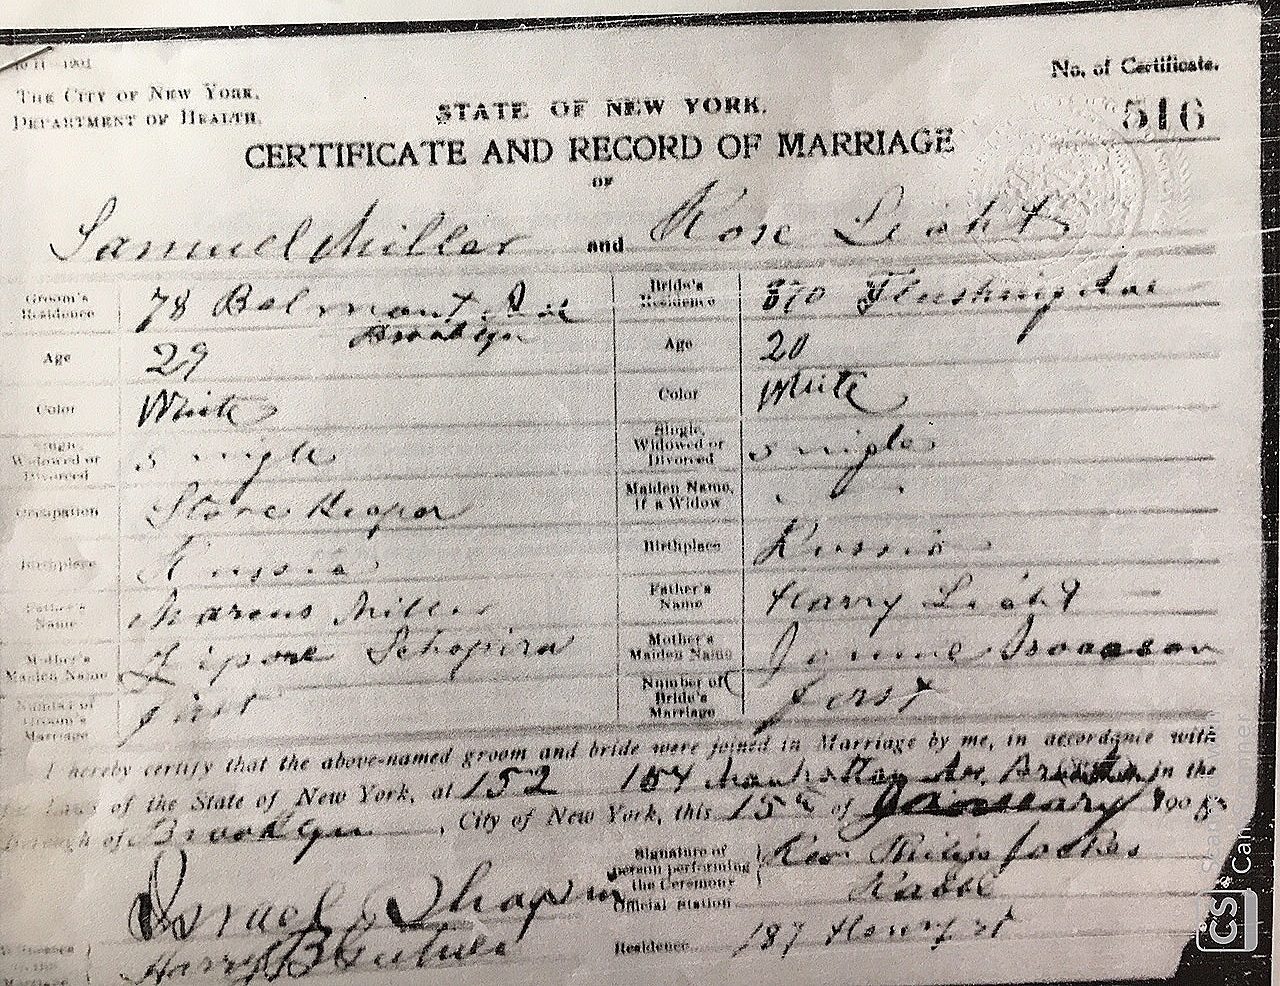 Samuel Miller and Rose Licht's marriage certificate, 1905.